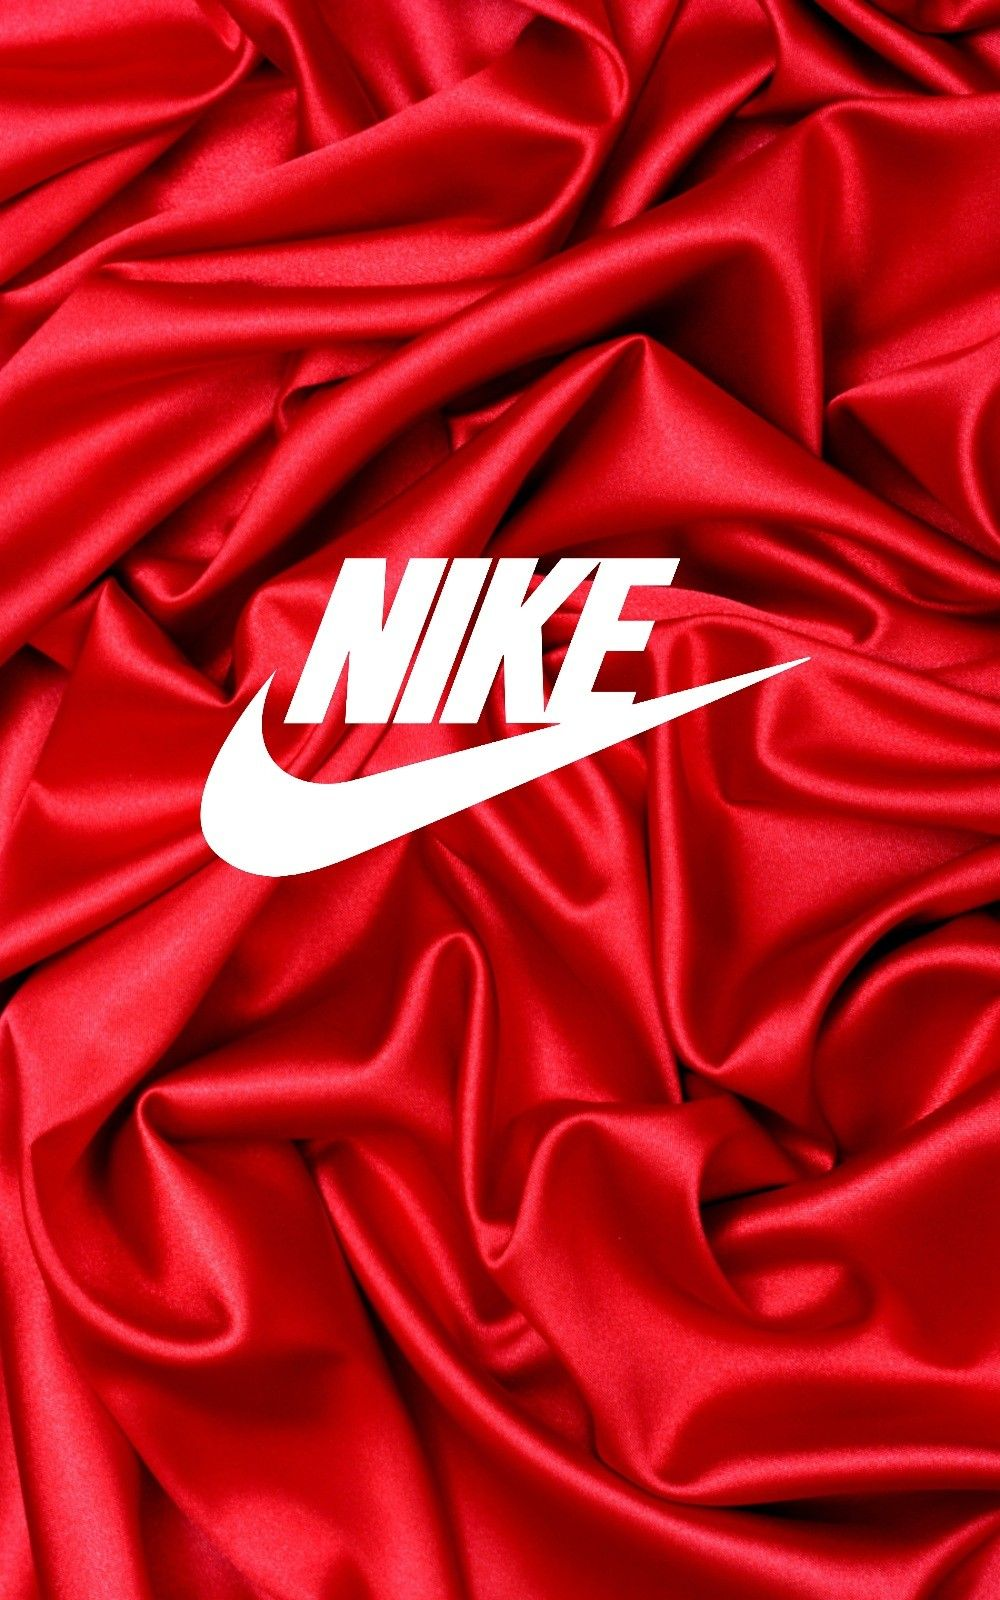 Everything NIKE Red NIKE wallpaper